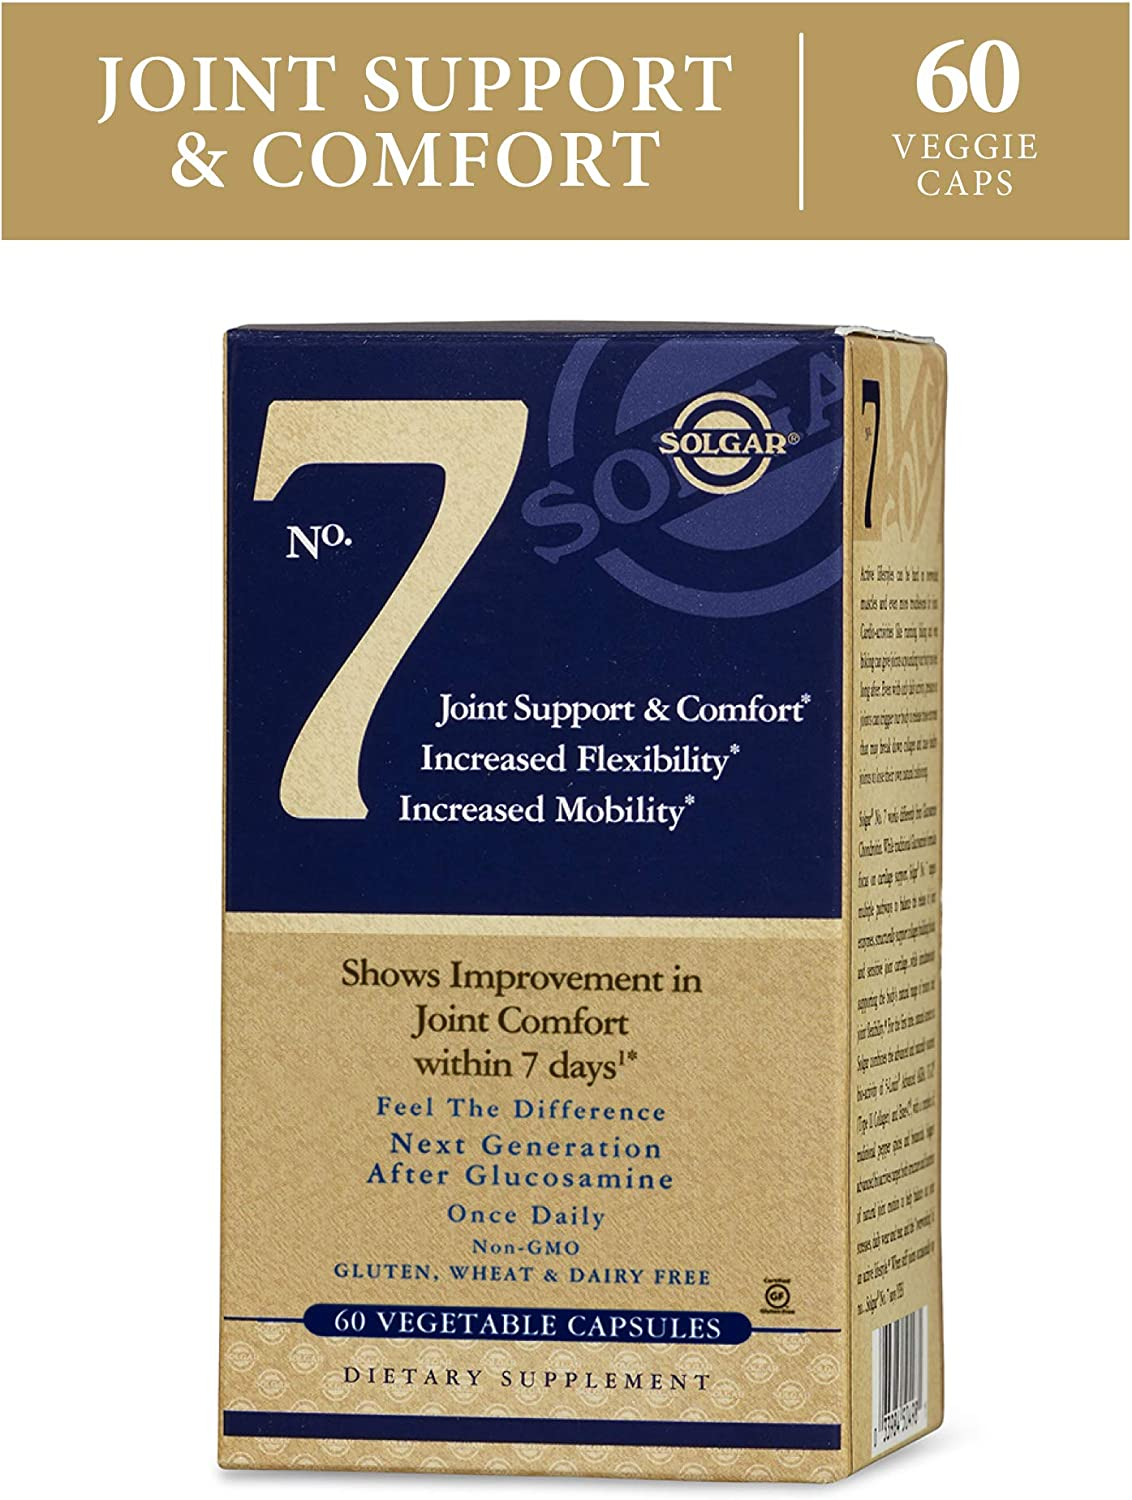 Solgar No. 7 - Joint Support and Comfort - 60 Vegetarian Capsules - Increased Mobility & Flexibility - Gluten-Free, Dairy-Free, Non-GMO - 60 Servings